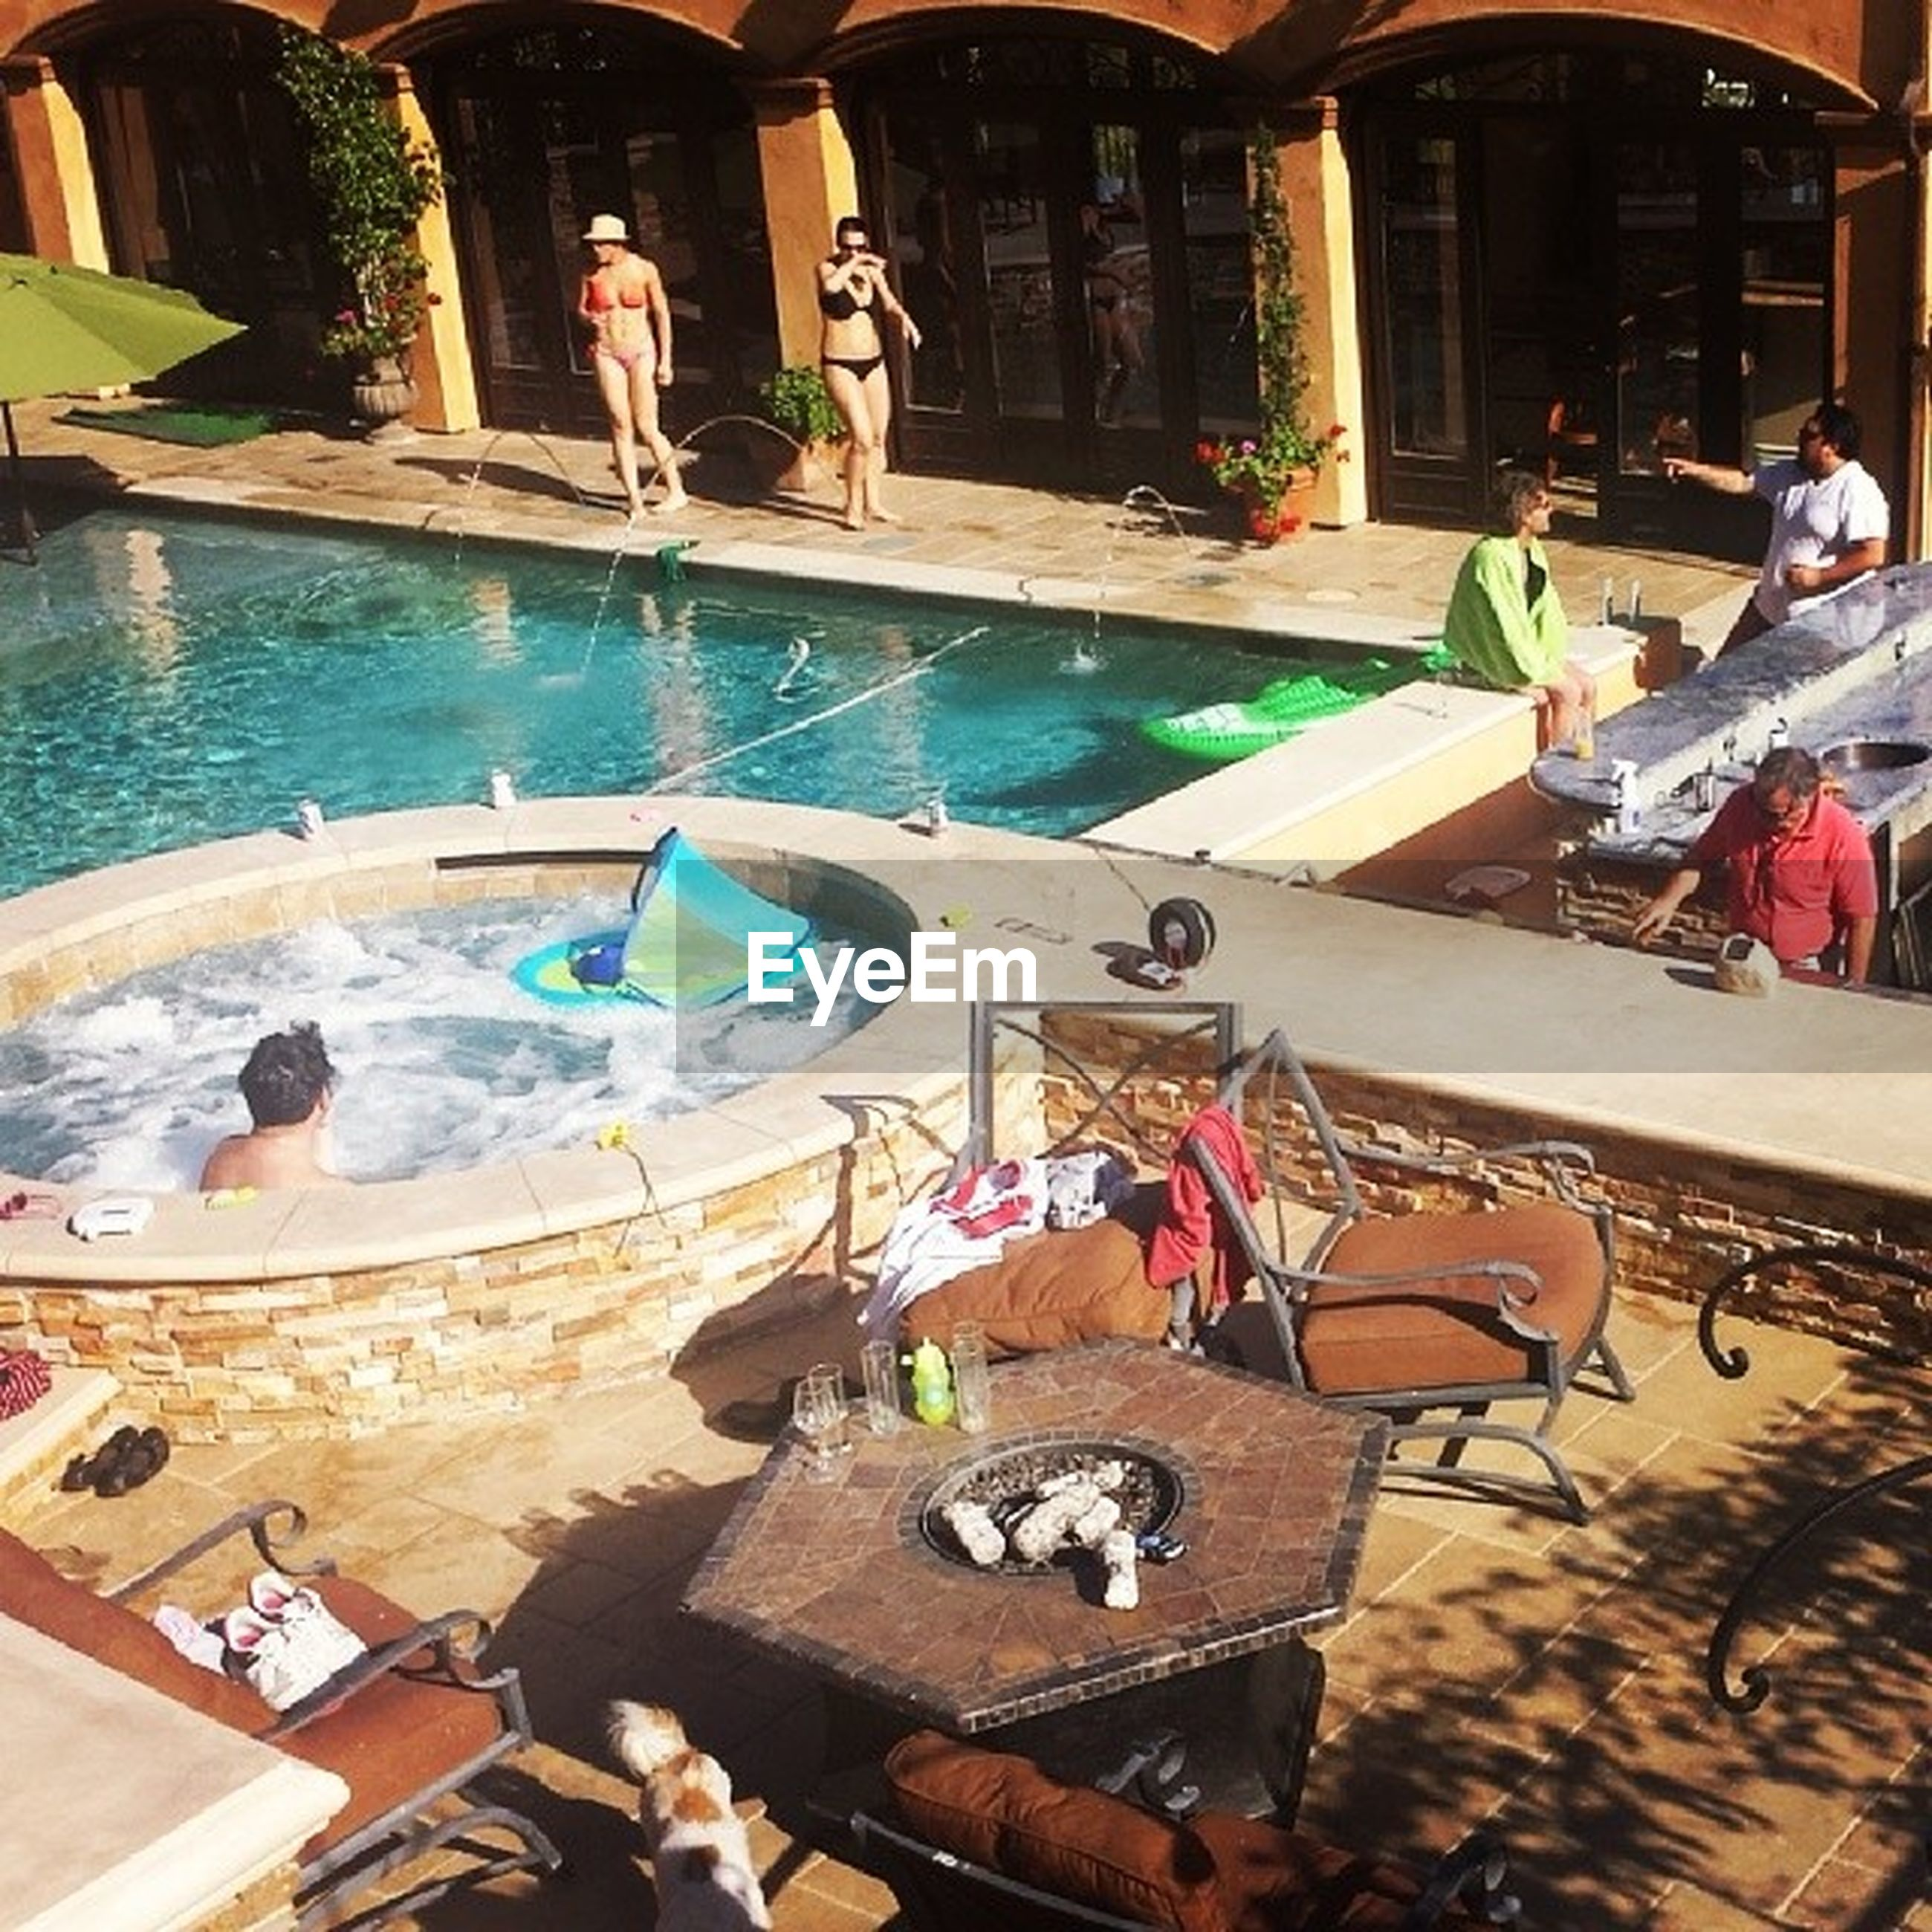 built structure, lifestyles, architecture, leisure activity, water, building exterior, high angle view, men, person, large group of people, animal themes, swimming pool, sitting, outdoors, relaxation, day, bird, city